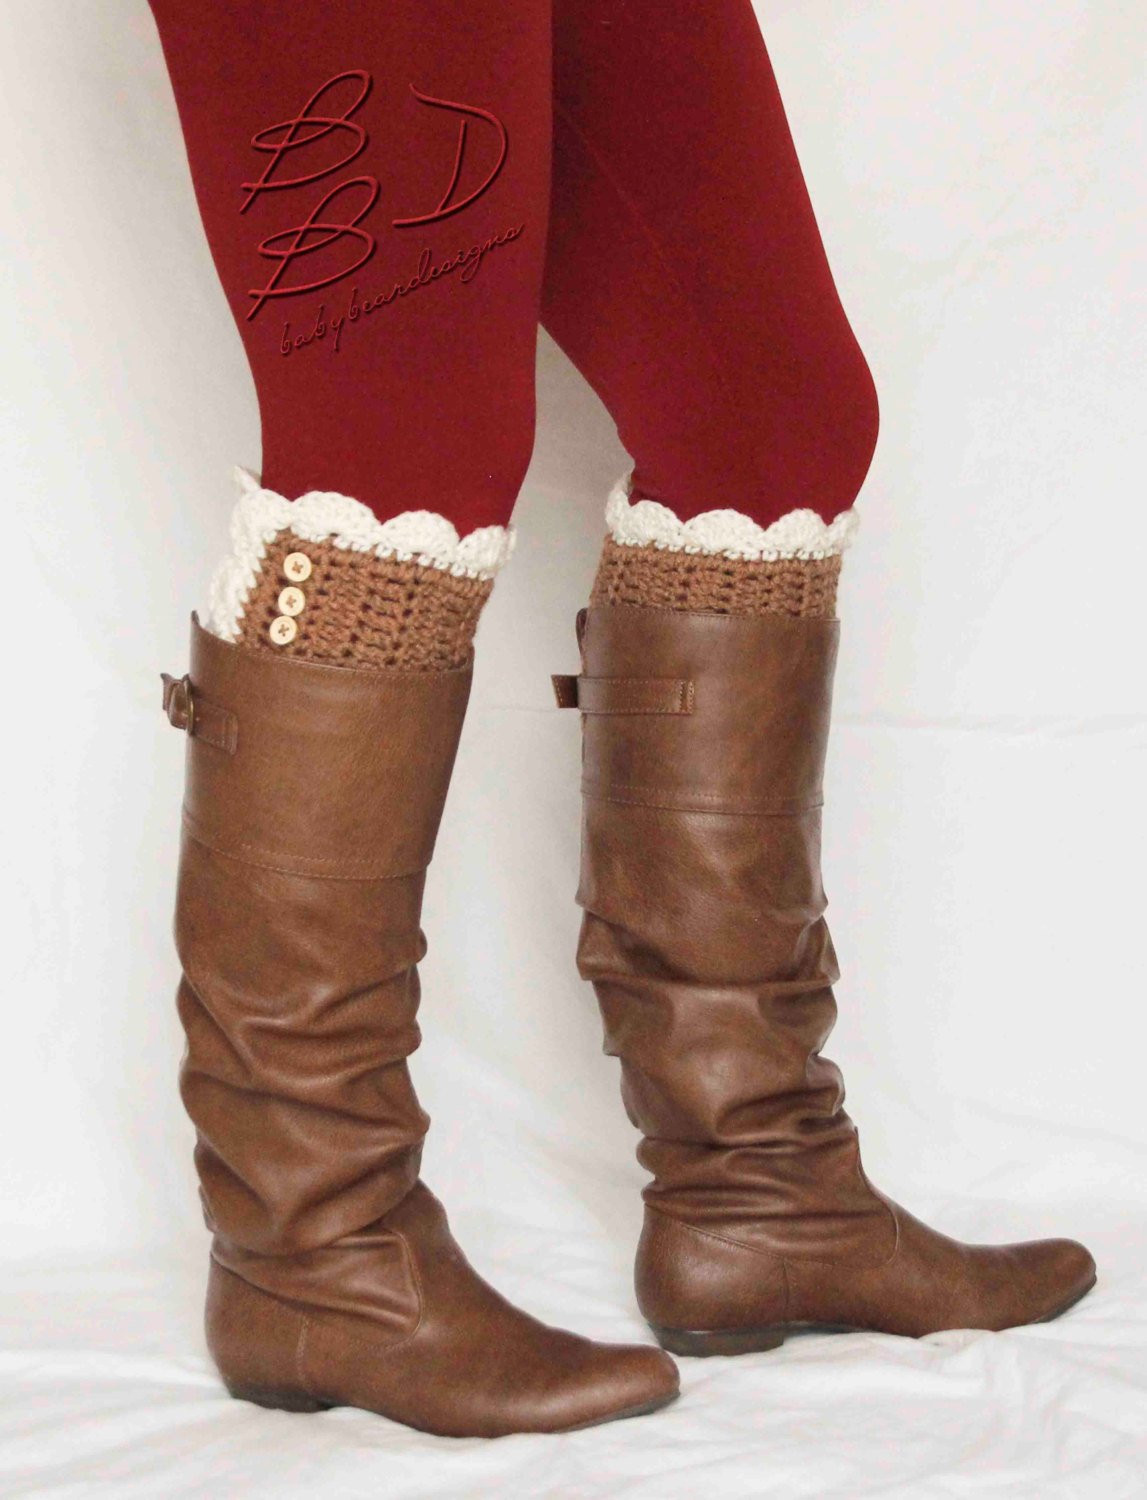 Lovely Lace Trim Boot Cuffs Wide Calf Sizes Available Lace Boot Cuffs Of Awesome 50 Pictures Lace Boot Cuffs